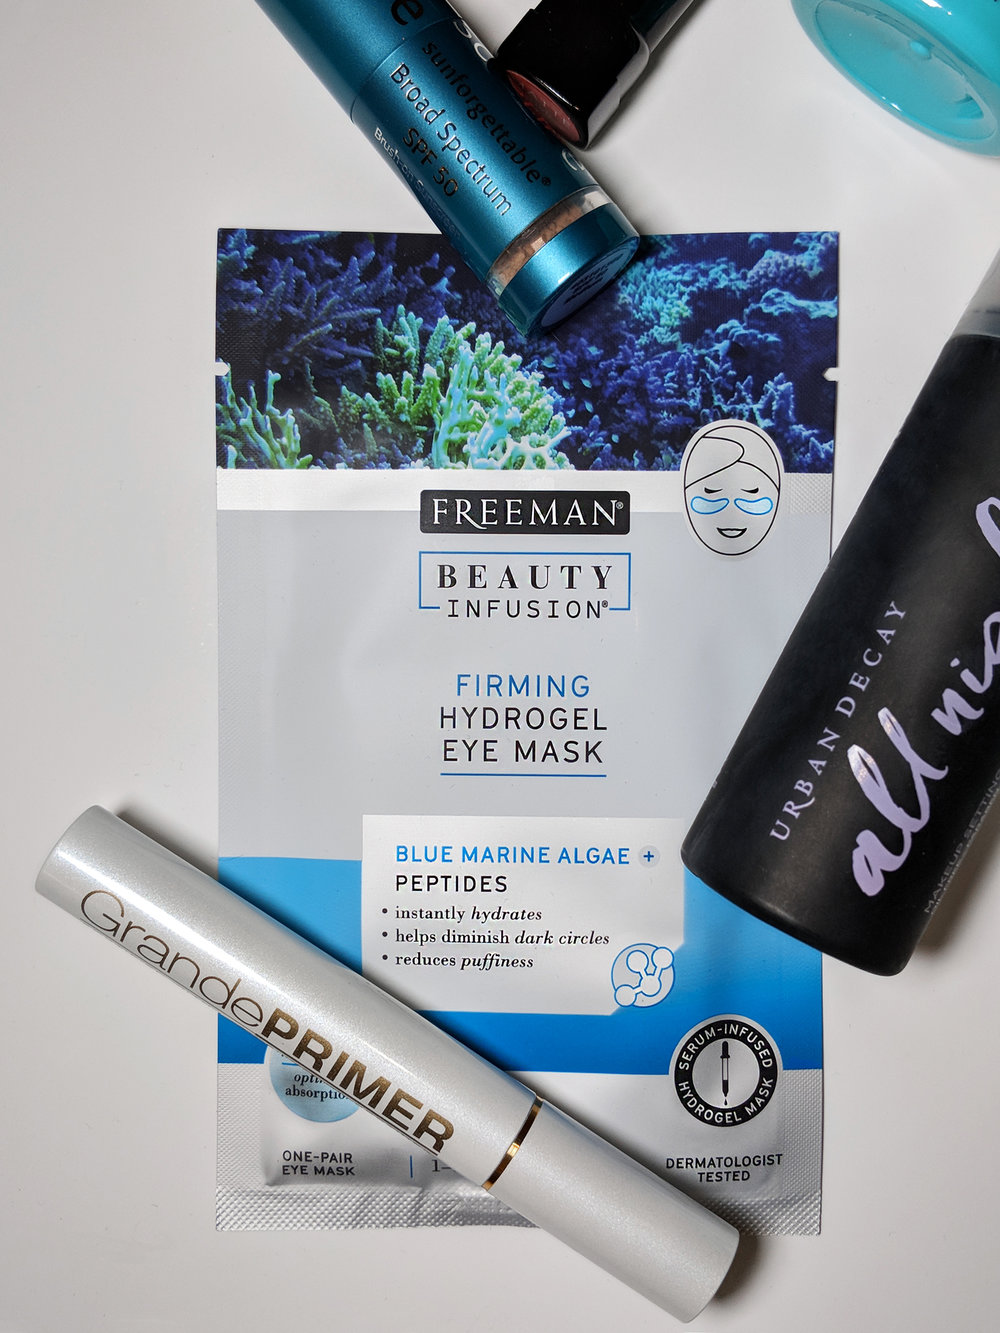 Freeman Beauty Infusion® Firming Hydrogel Eye Mask